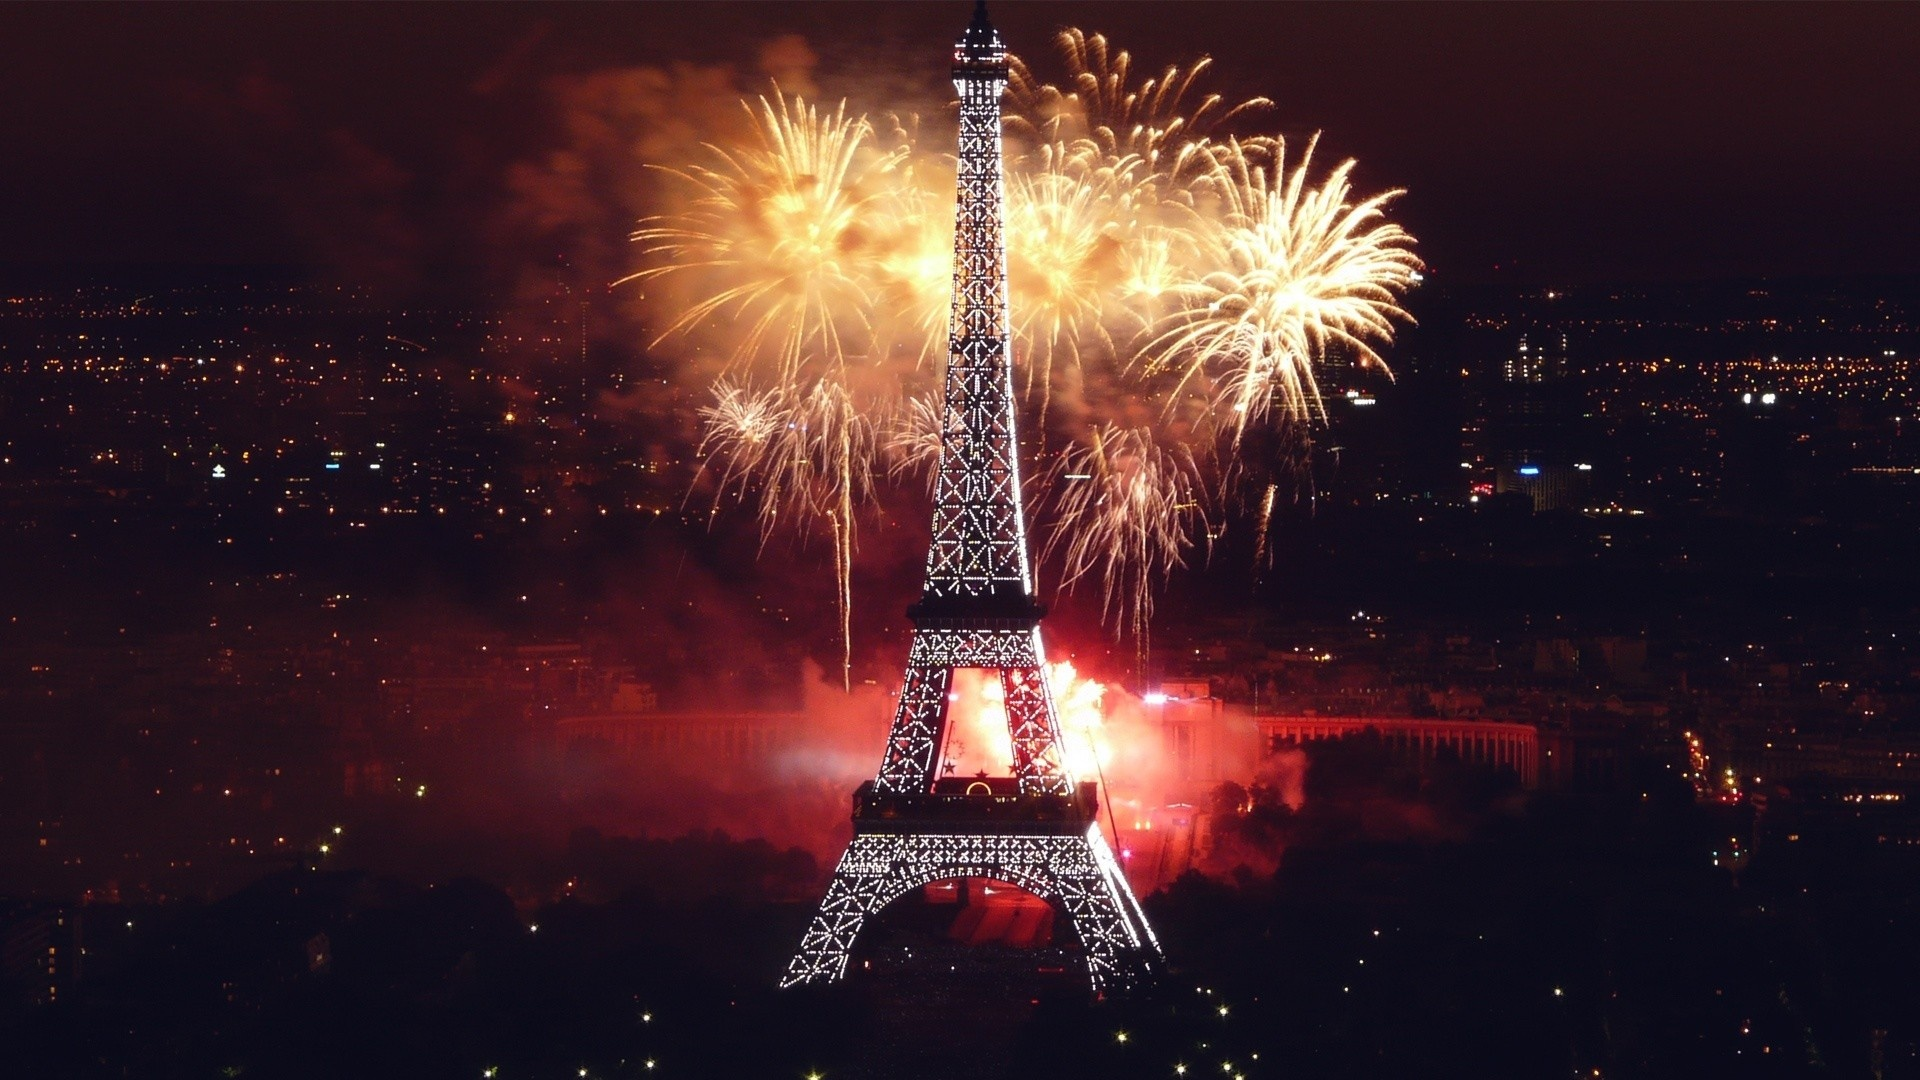 Fireworks in Paris 2015: The best pictures Fireworks in Paris 2015: The best pictures eiffel tower paris fireworks celebration happy new year 1920x1080